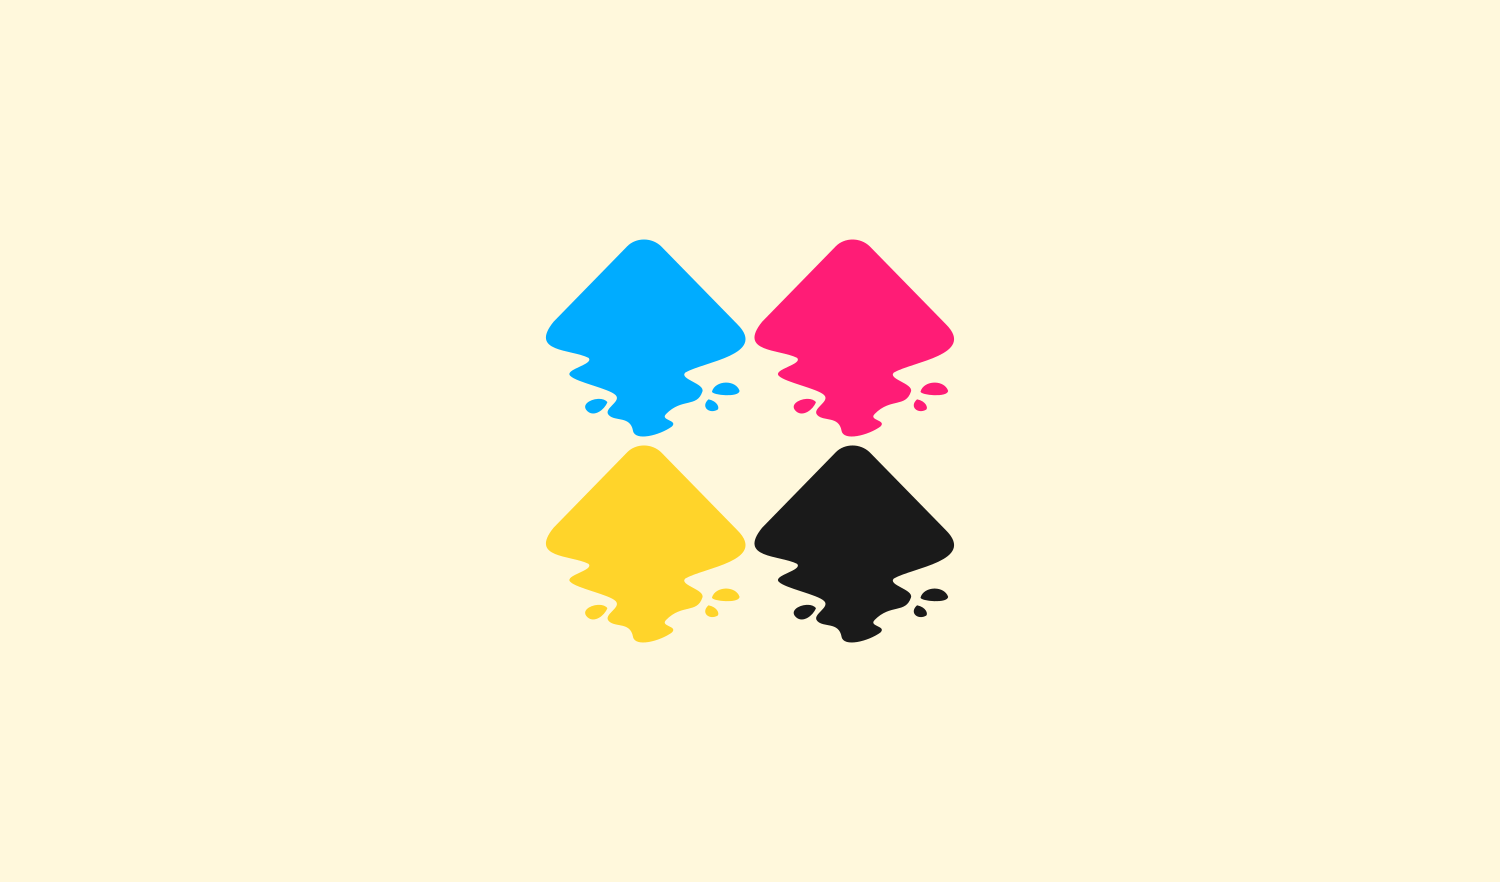 How to export CMYK with Inkscape